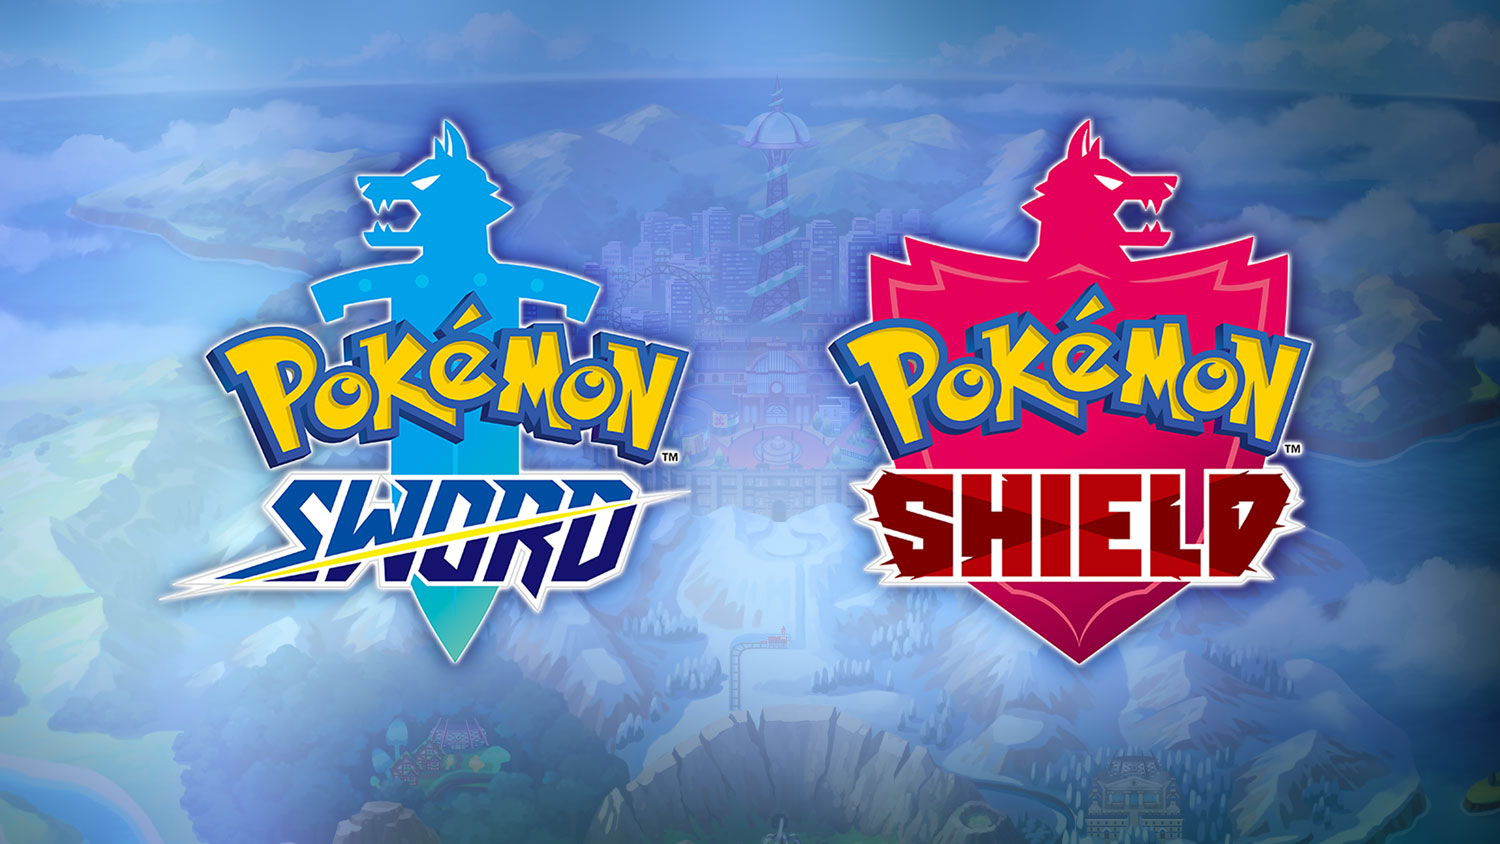 Pokemon Sword and Shield - where to find an old letter